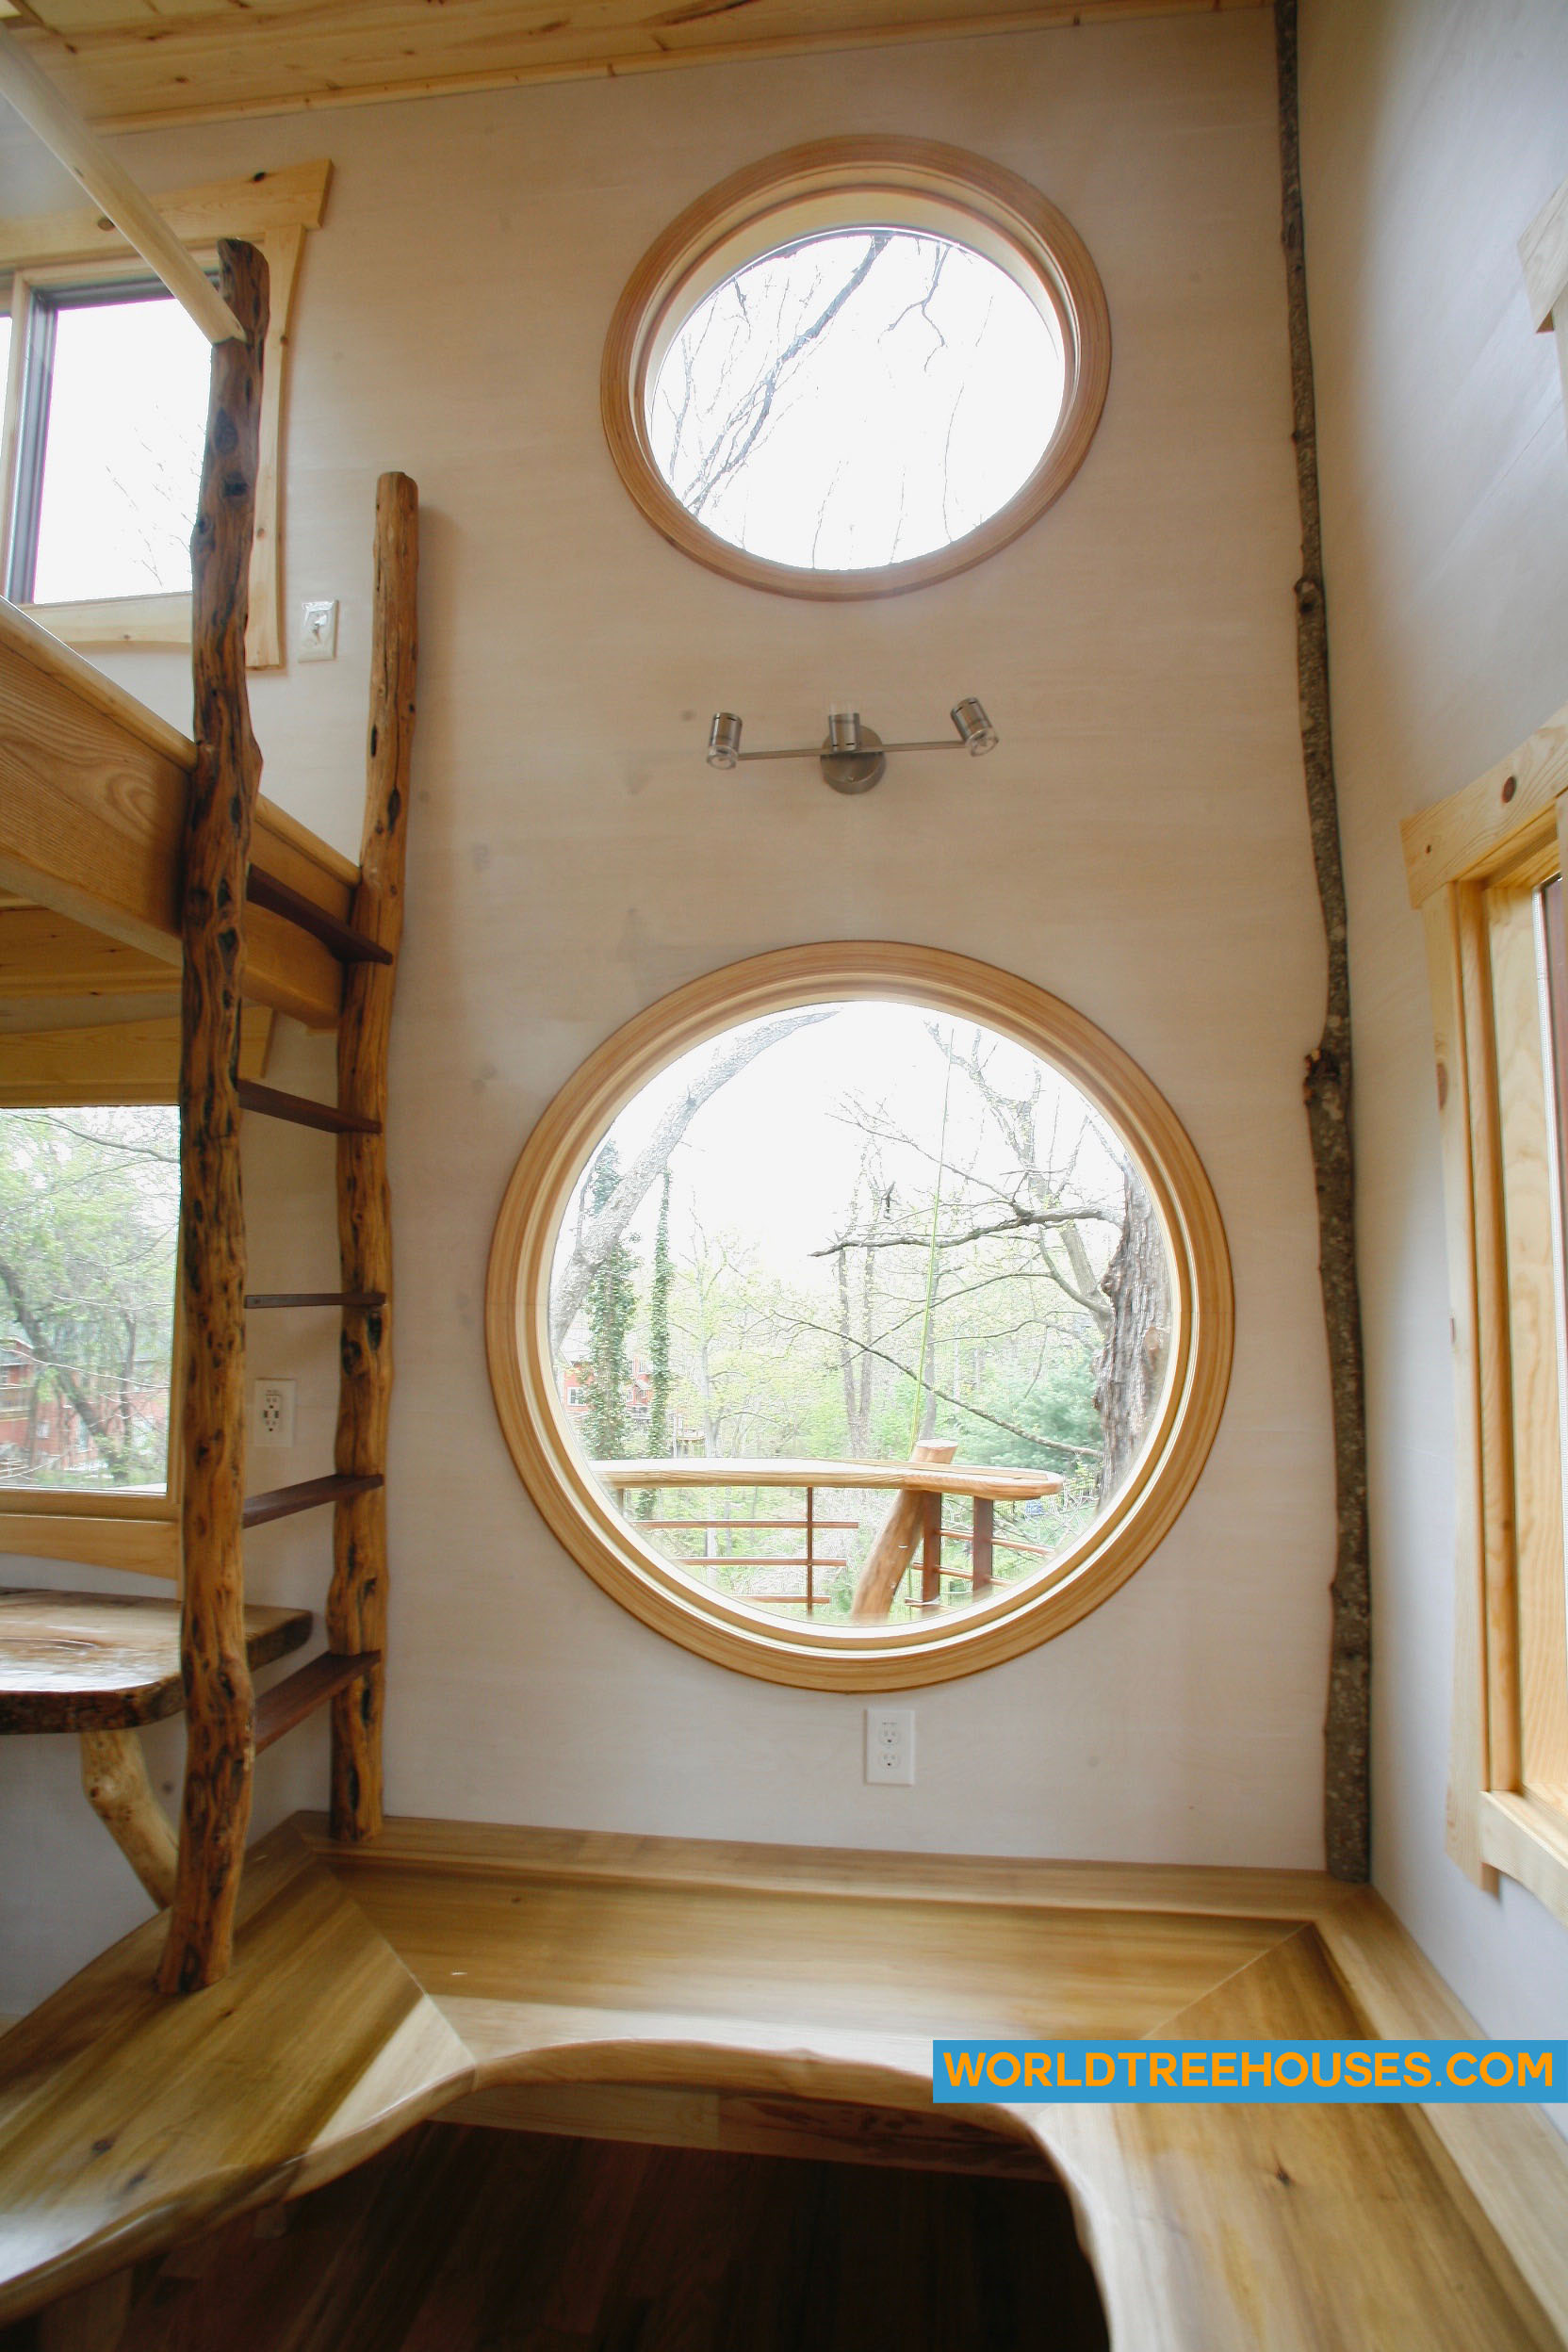 WNC tree house builders: Circular interior windows